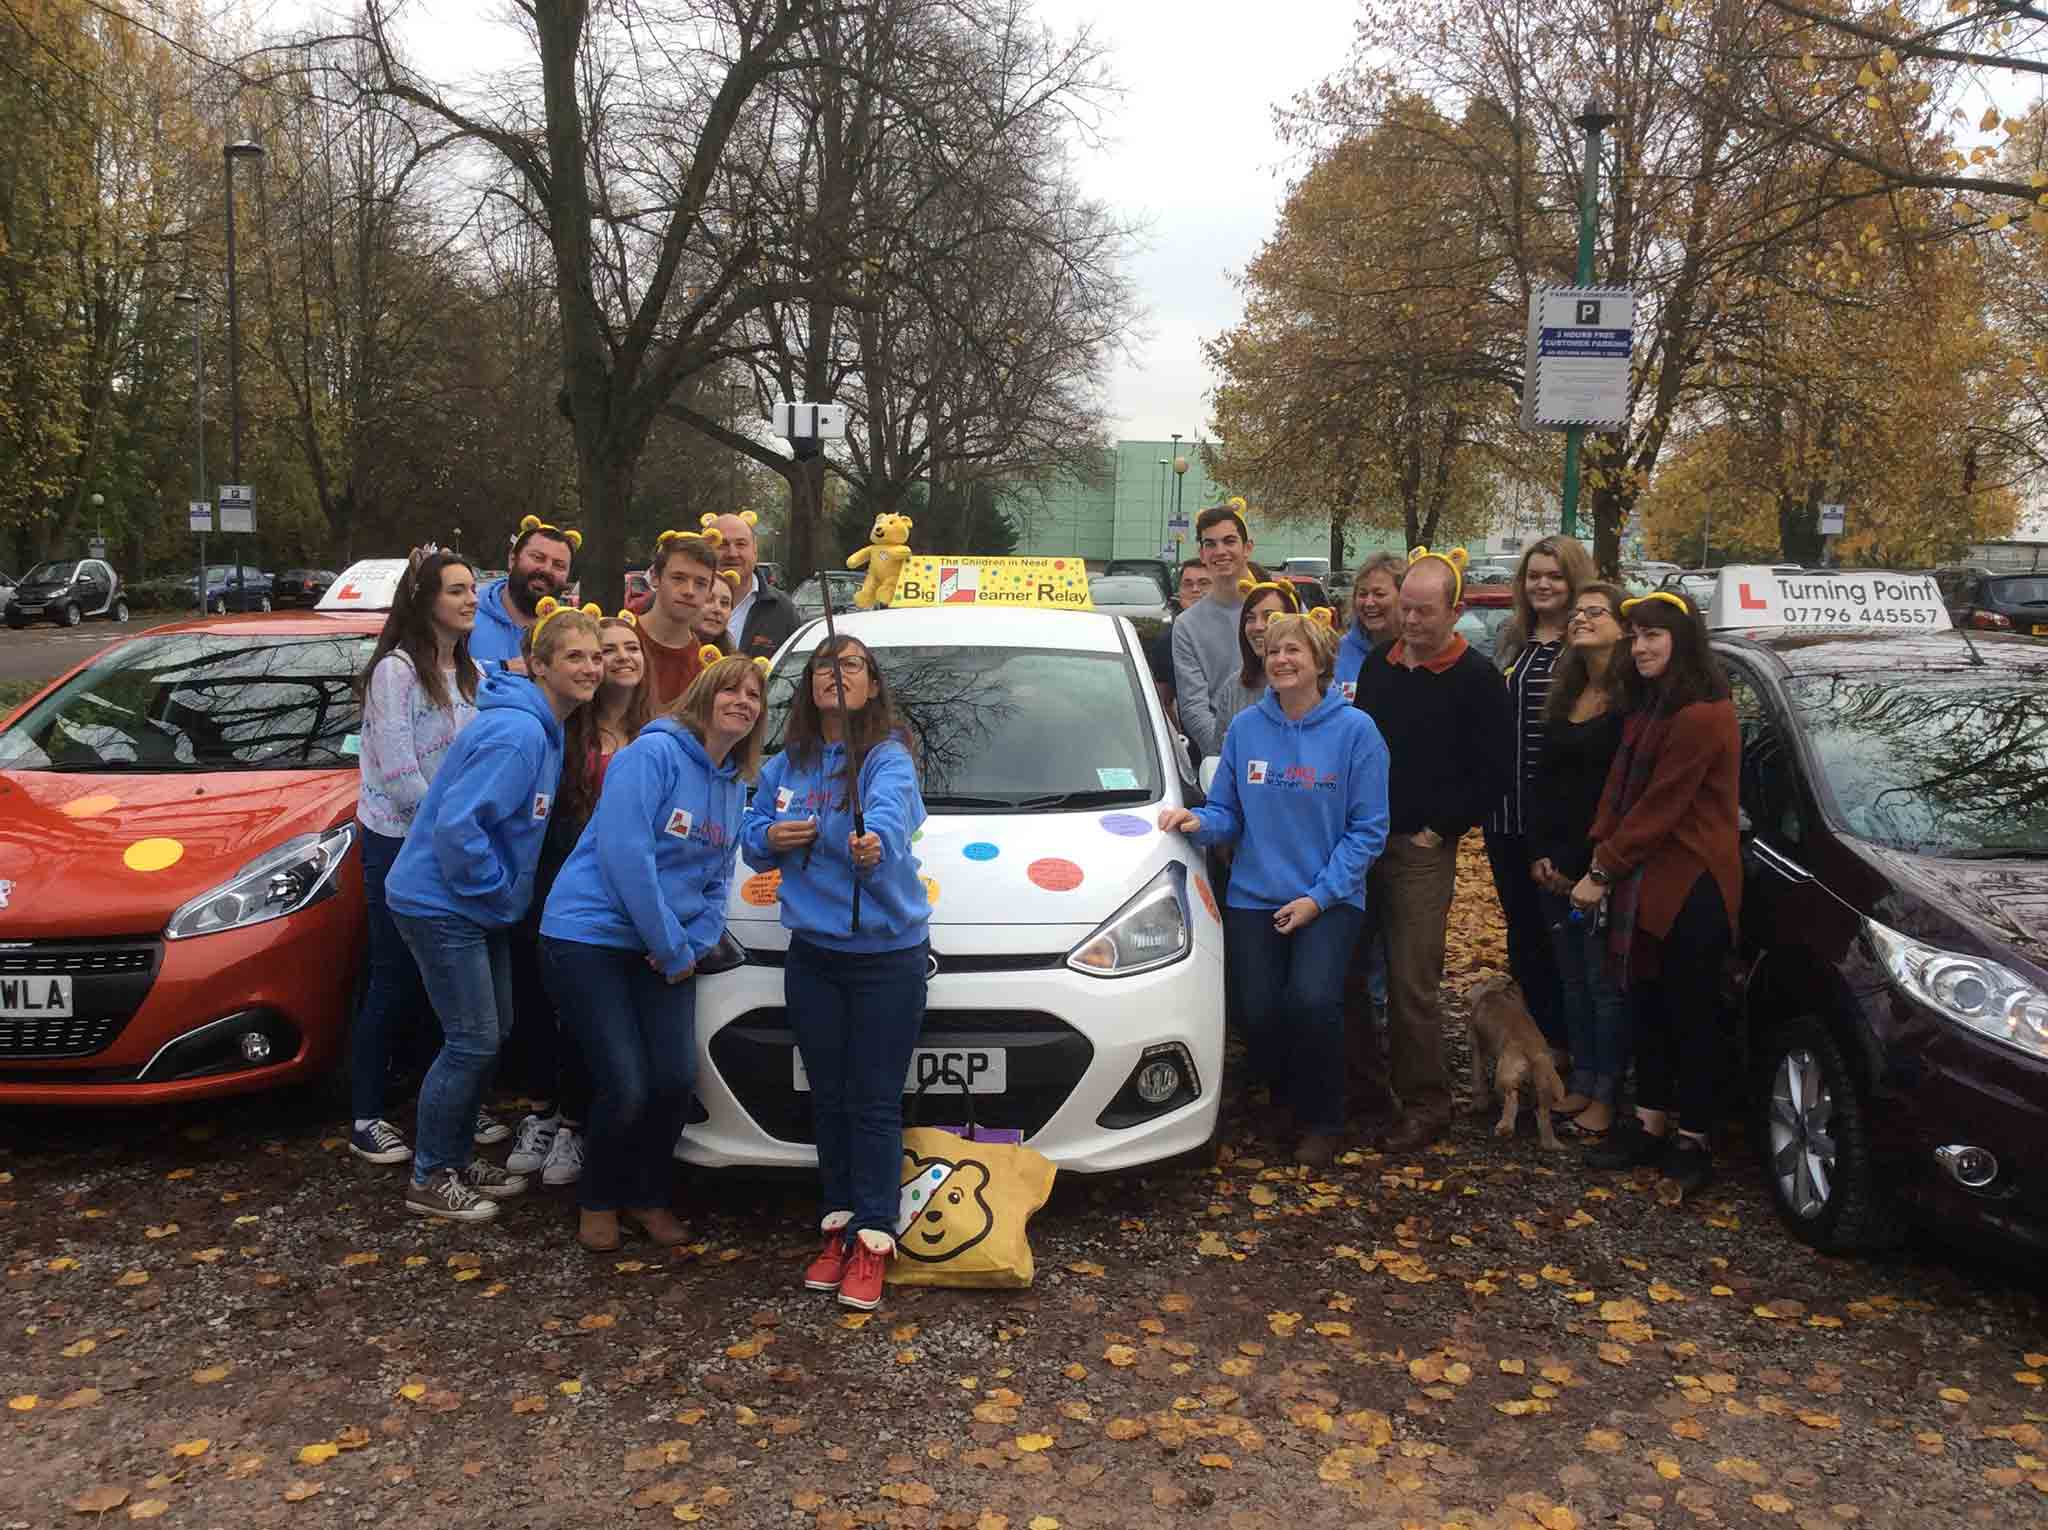 Big Learner Relay Tunbridge Wells